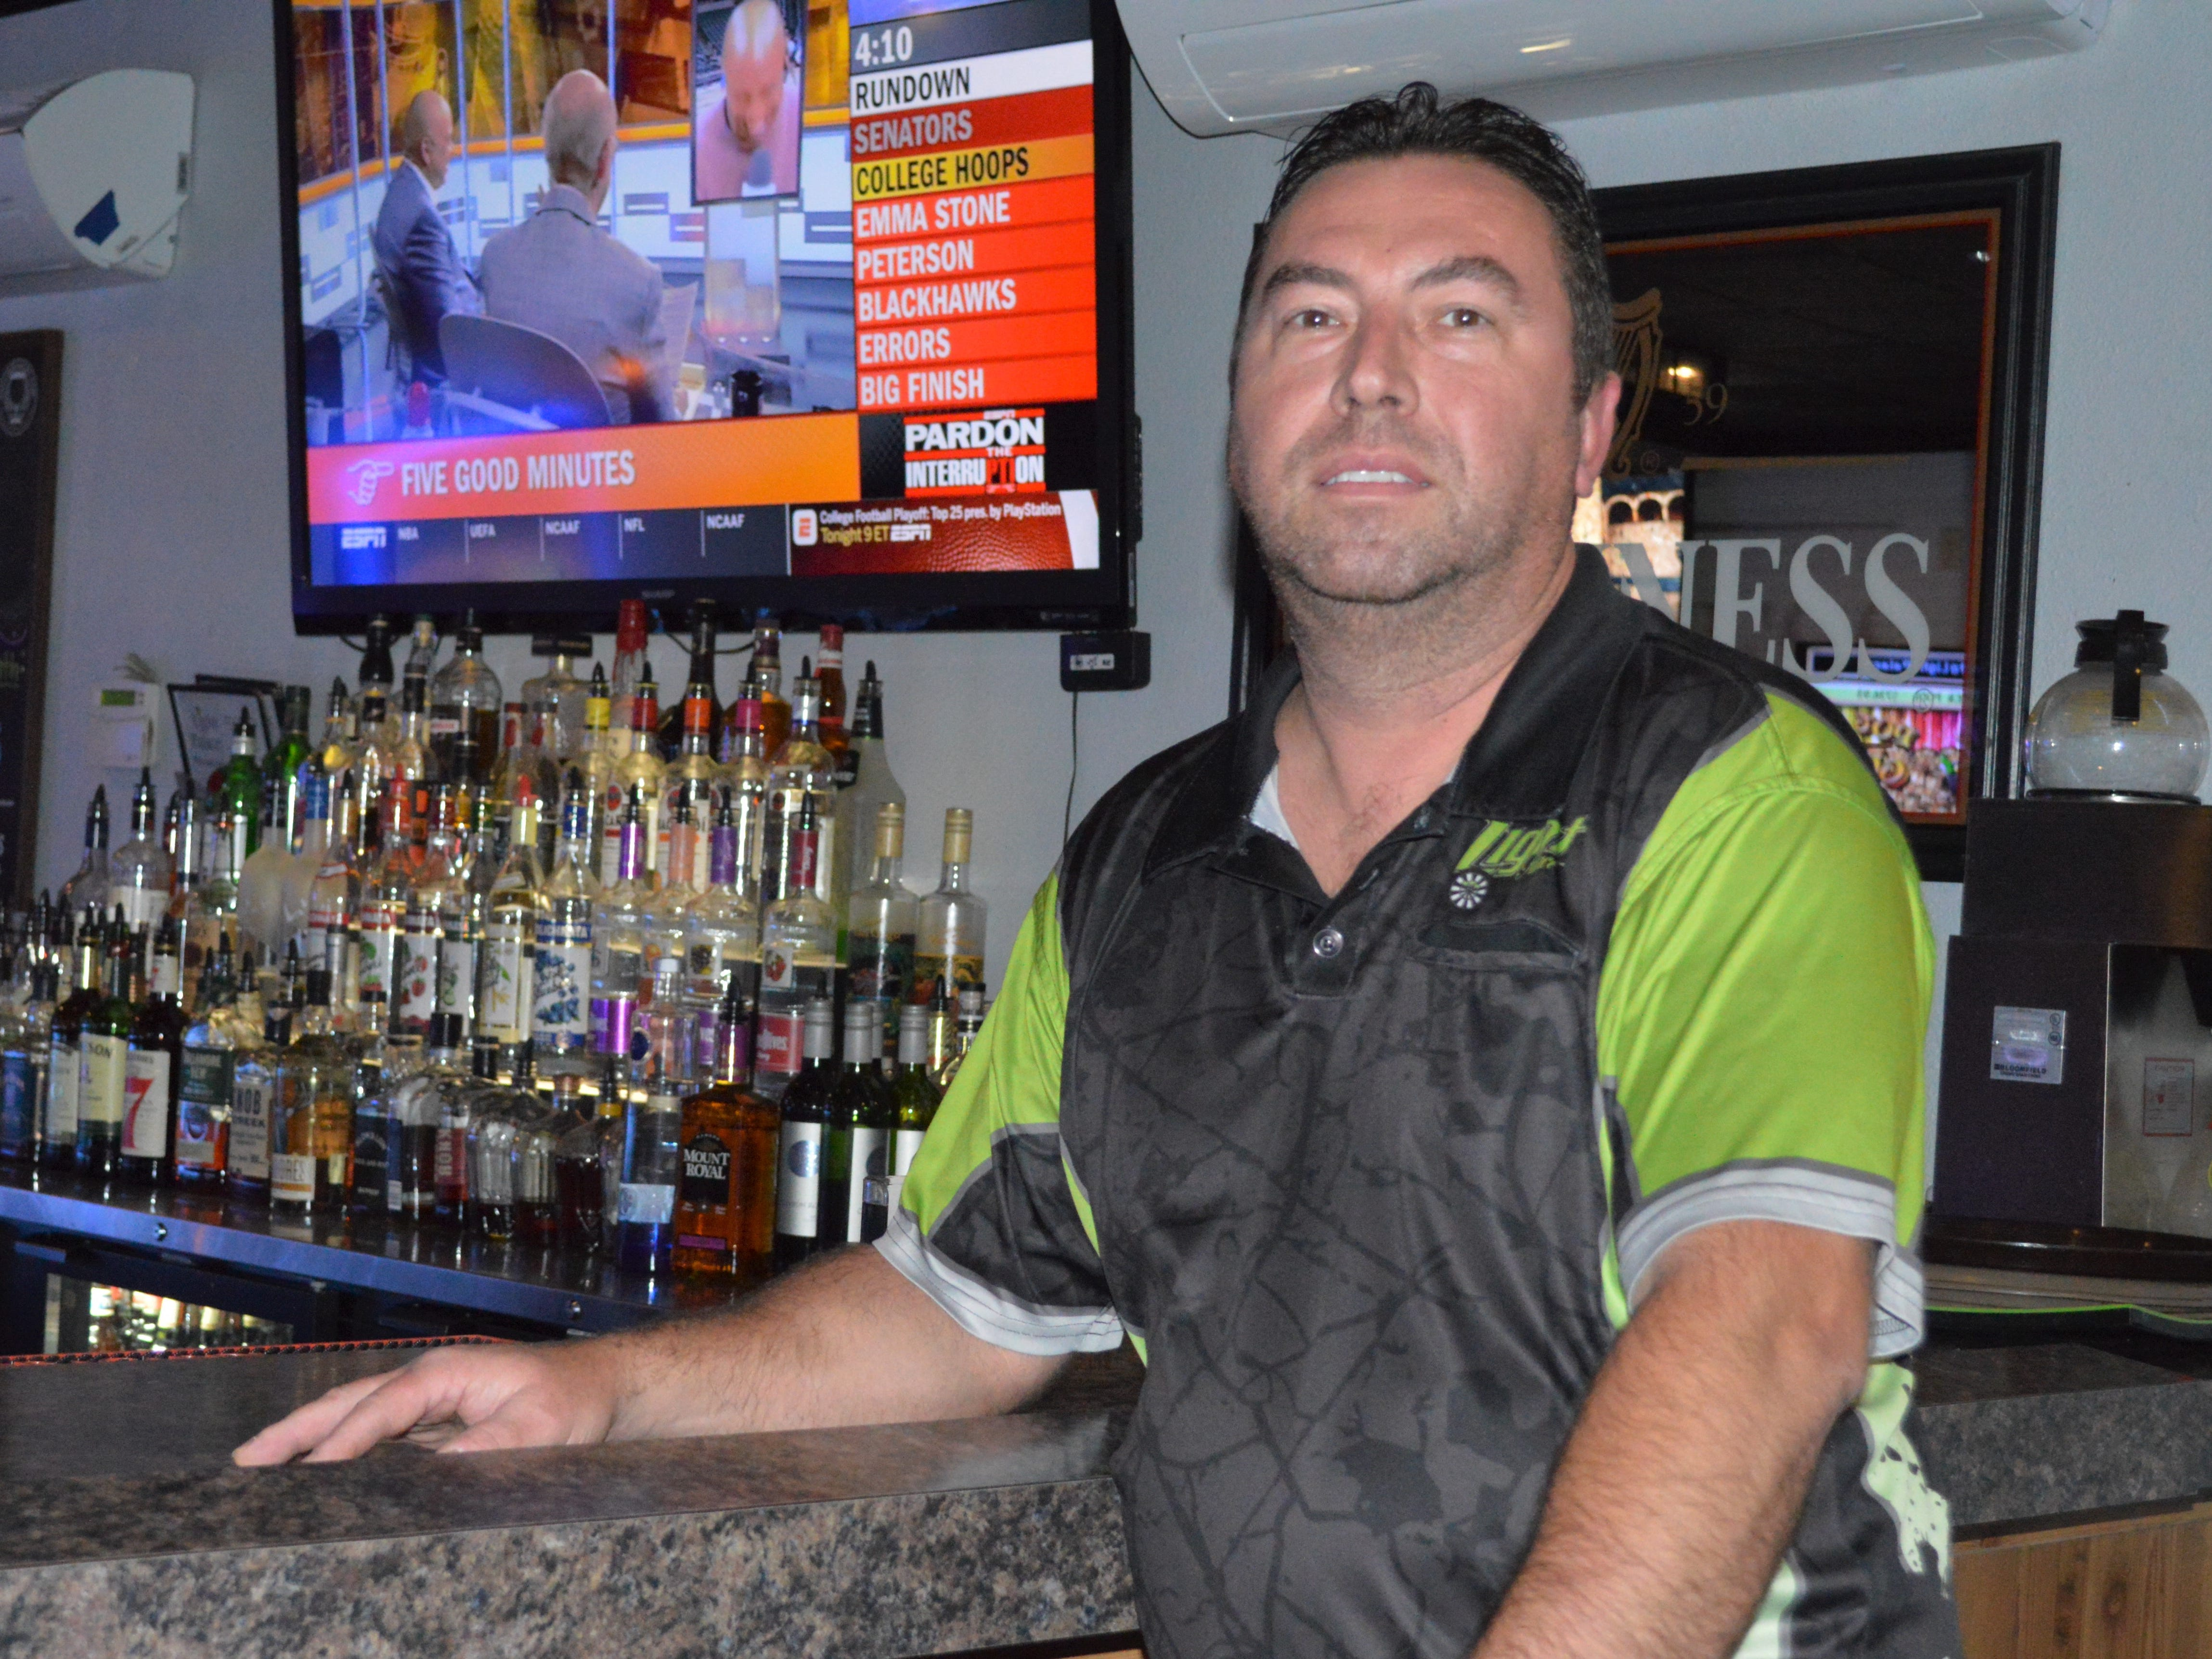 John Schultz, the owner of Light Palace Pub and Grill, is a Cudahy native.